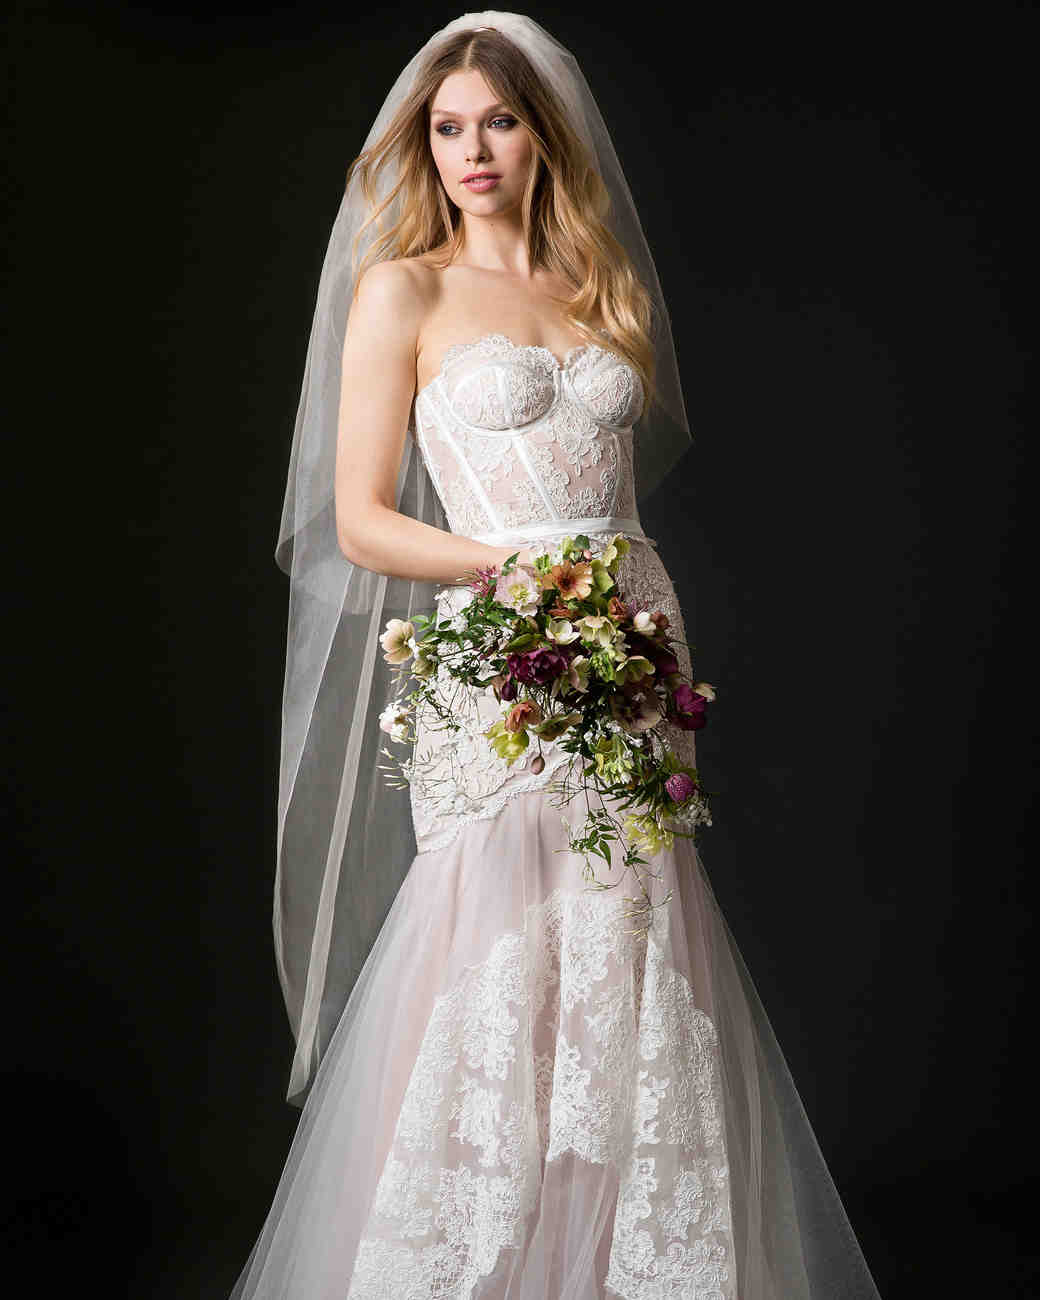 Wedding Gown Trends: Sexy Wedding Dresses For Brides Who Want To Turn Heads